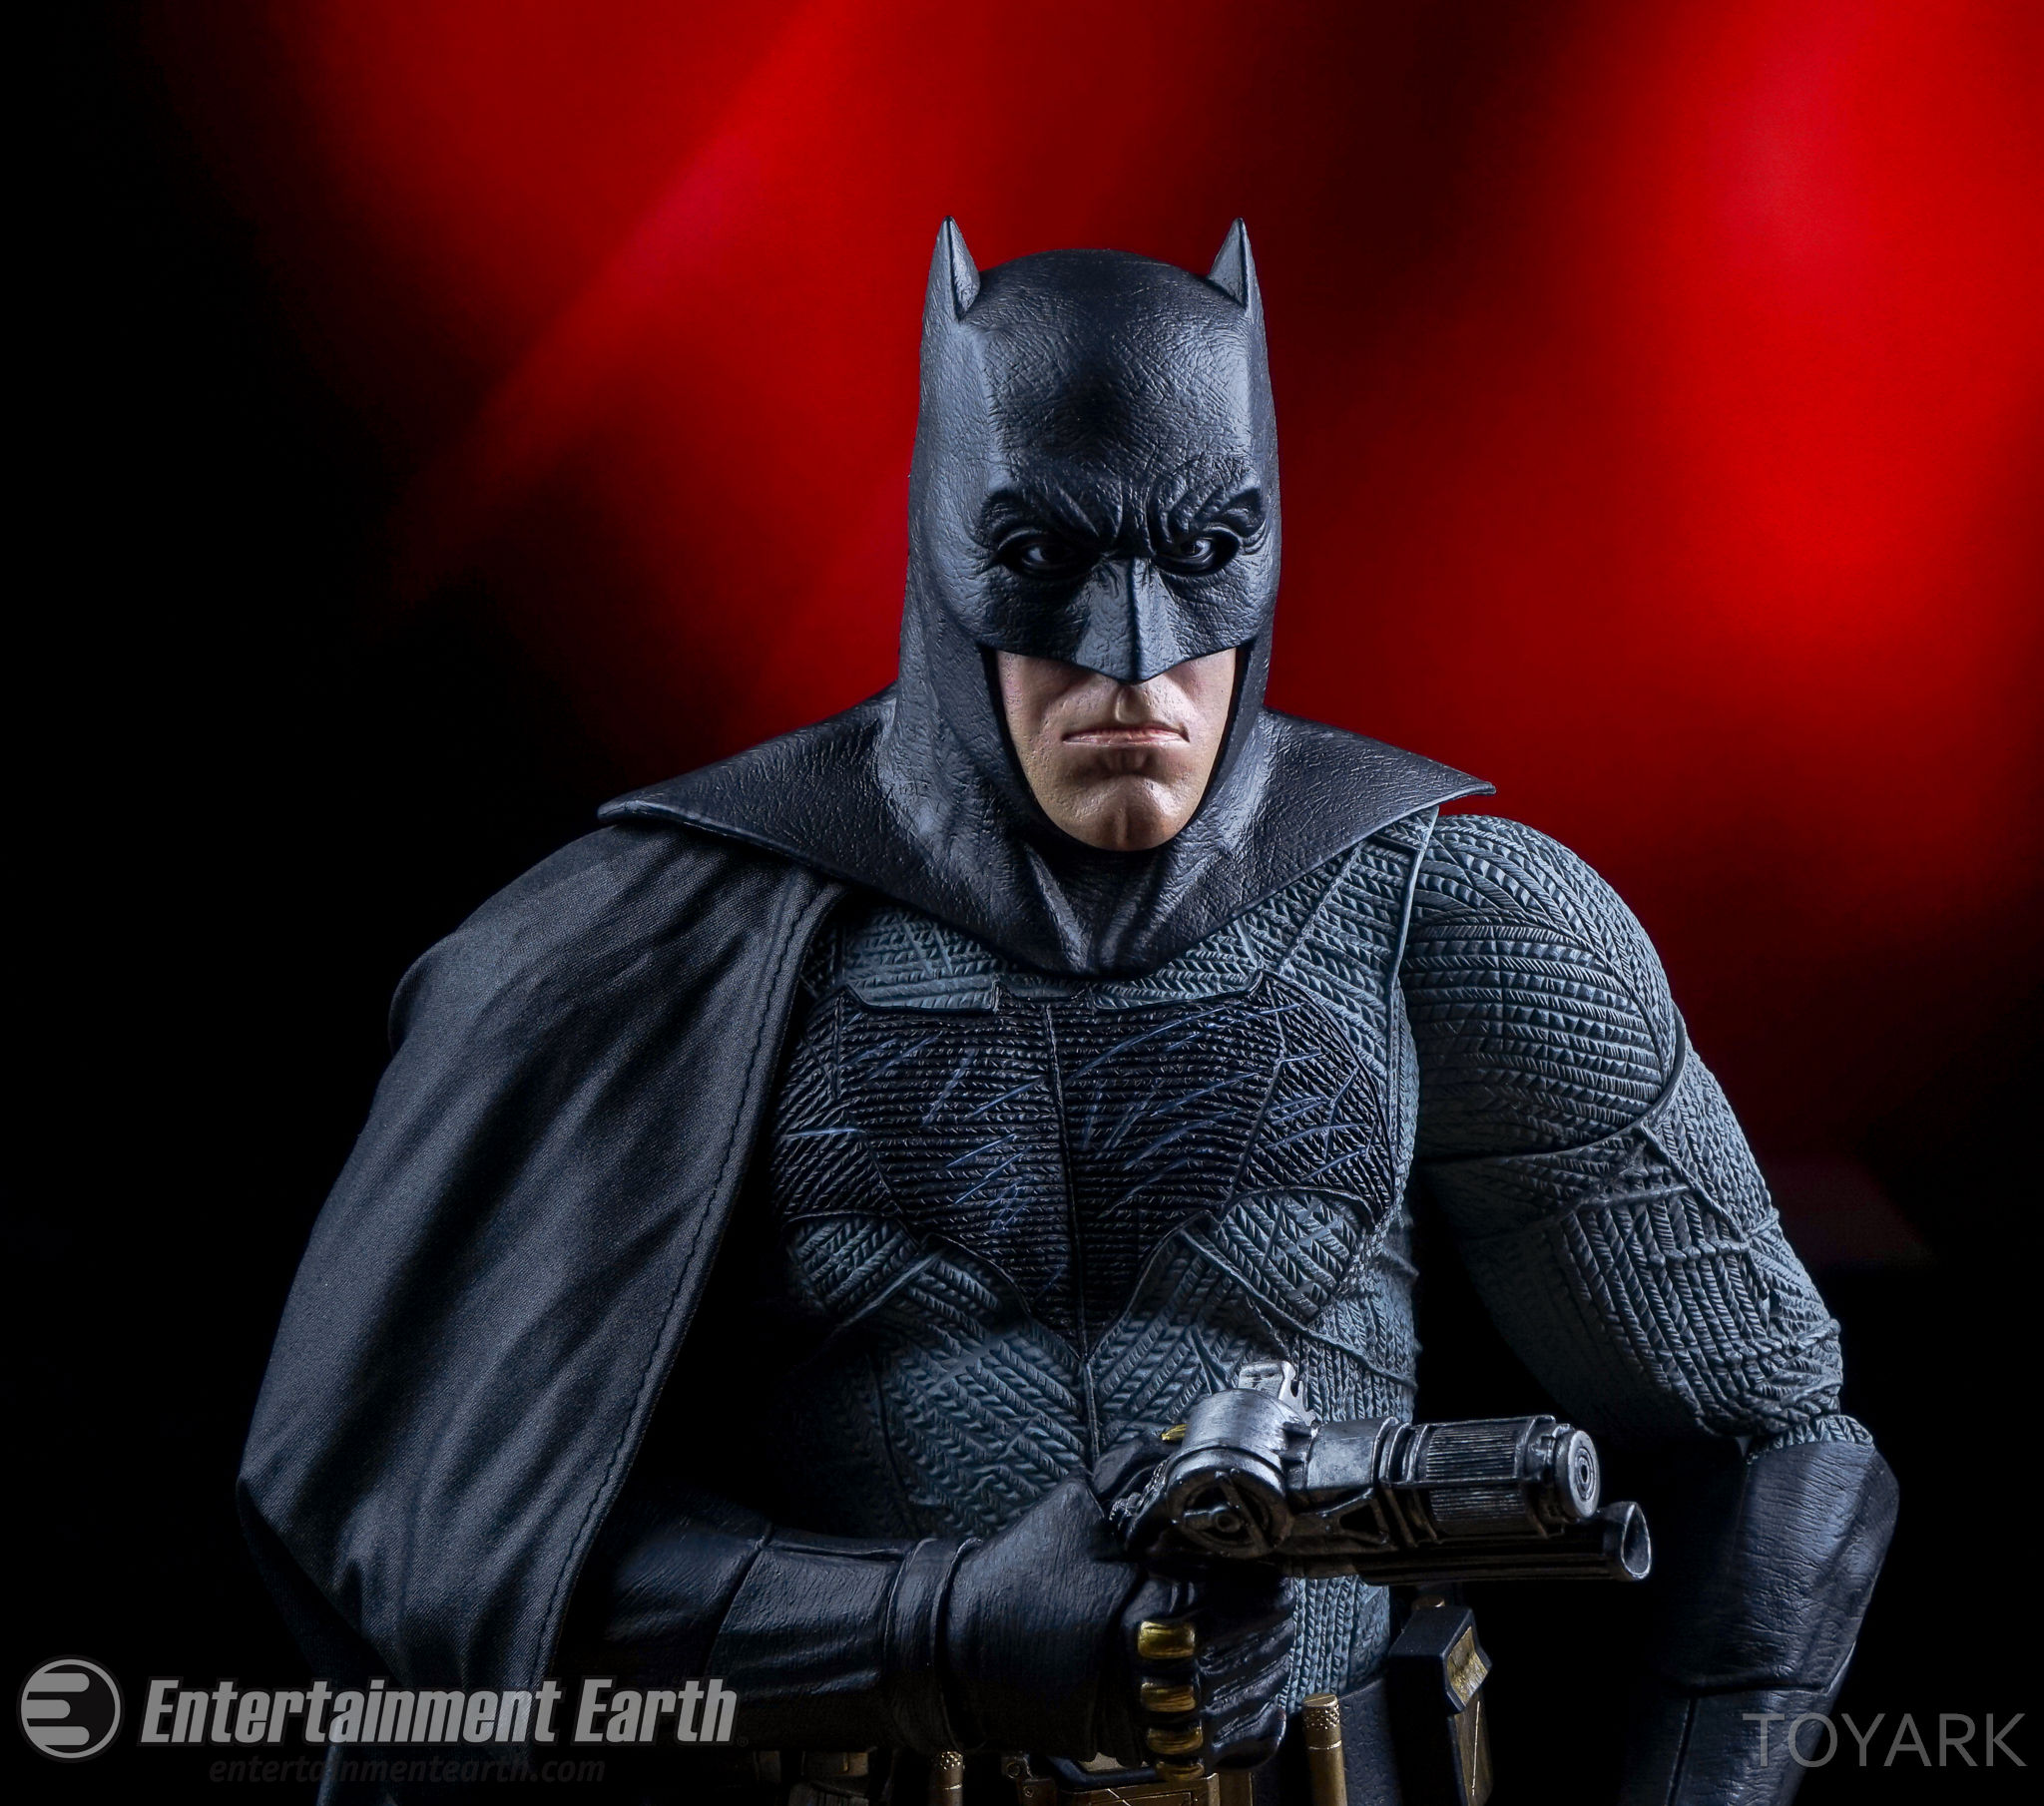 http://news.toyark.com/wp-content/uploads/sites/4/2016/06/NECA-BvS-Quarter-Scale-Batman-054.jpg